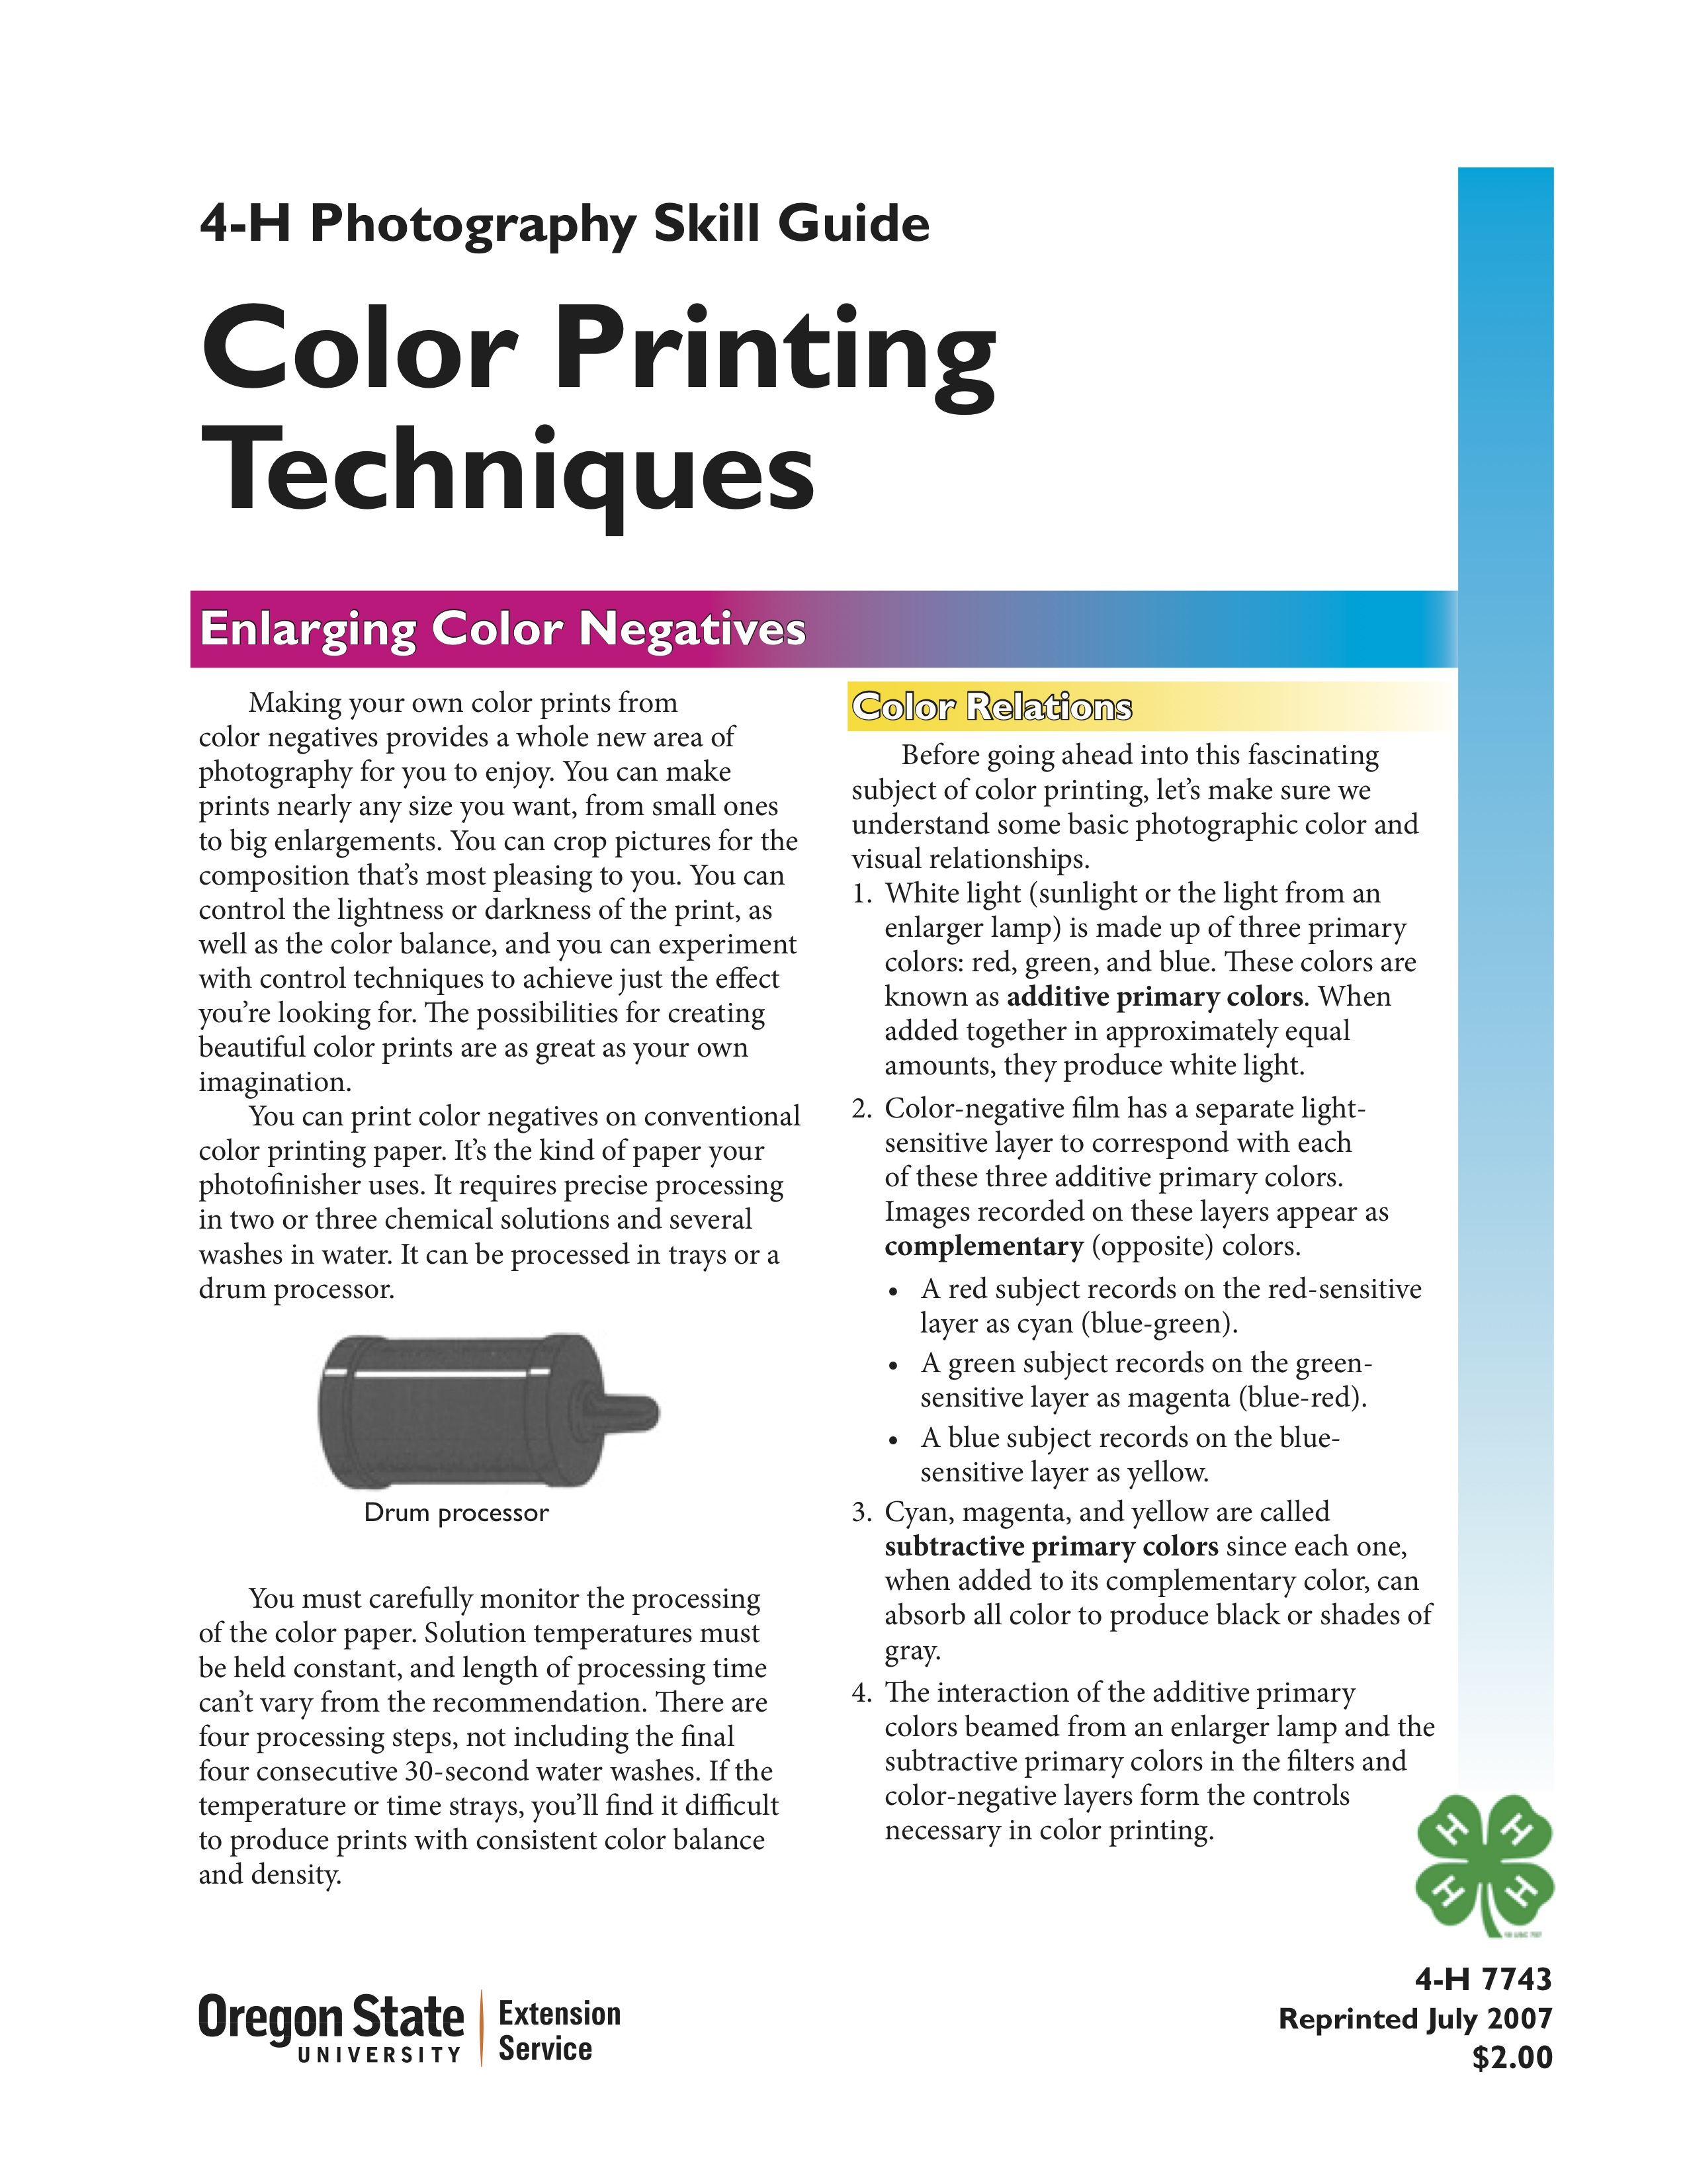 Color Printing Techniques 4 H Photography Skill Guide